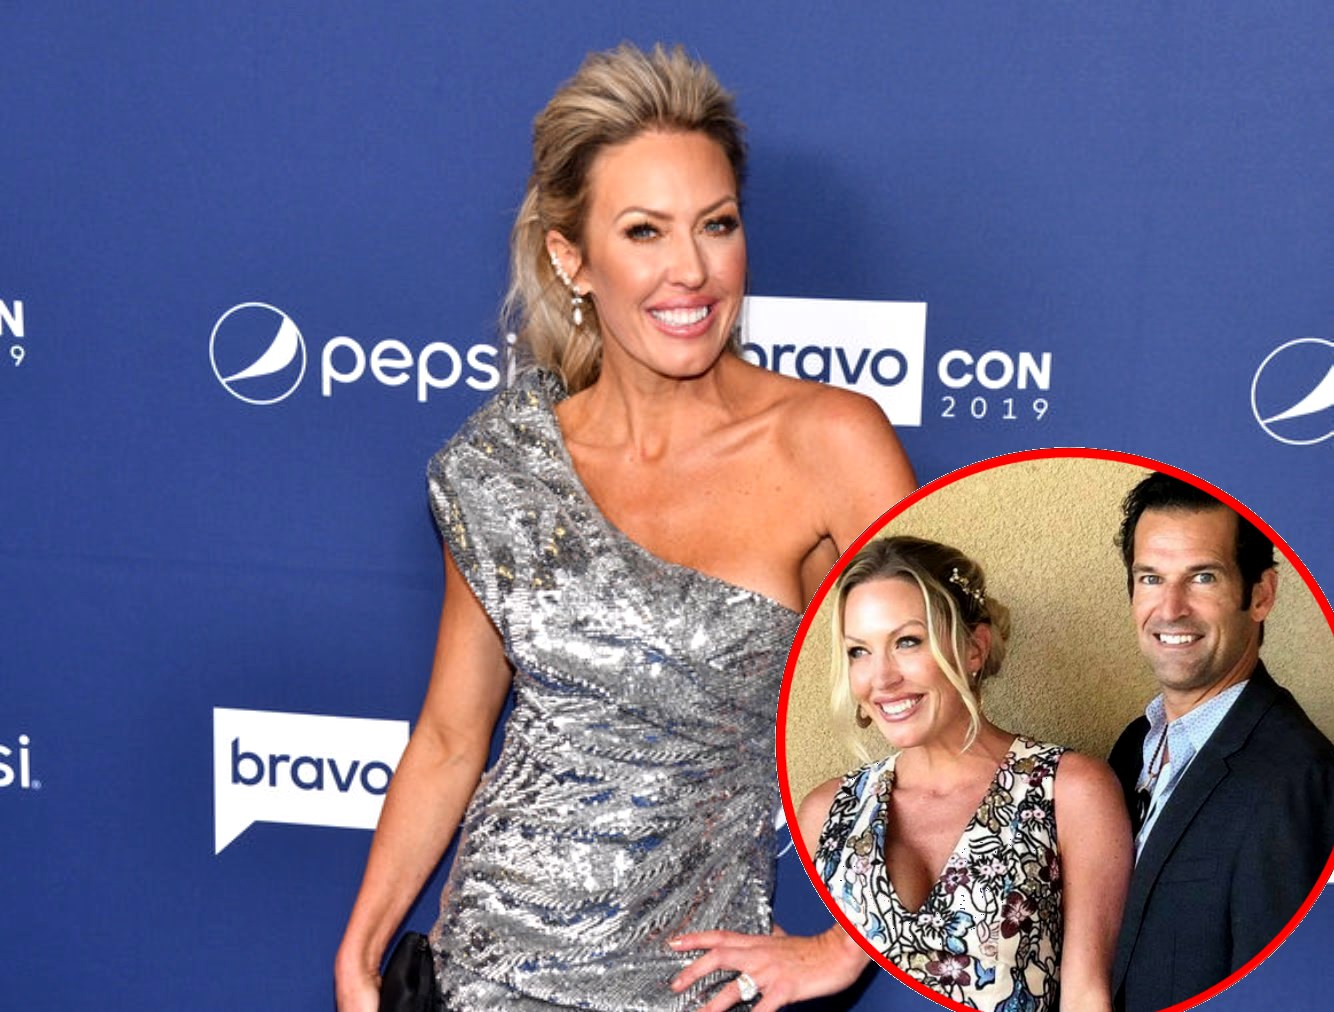 RHOC's Braunwyn Windham-Burke Clarifies a Major Misconception About Her Marriage, Plus She Teases Upcoming Reunion